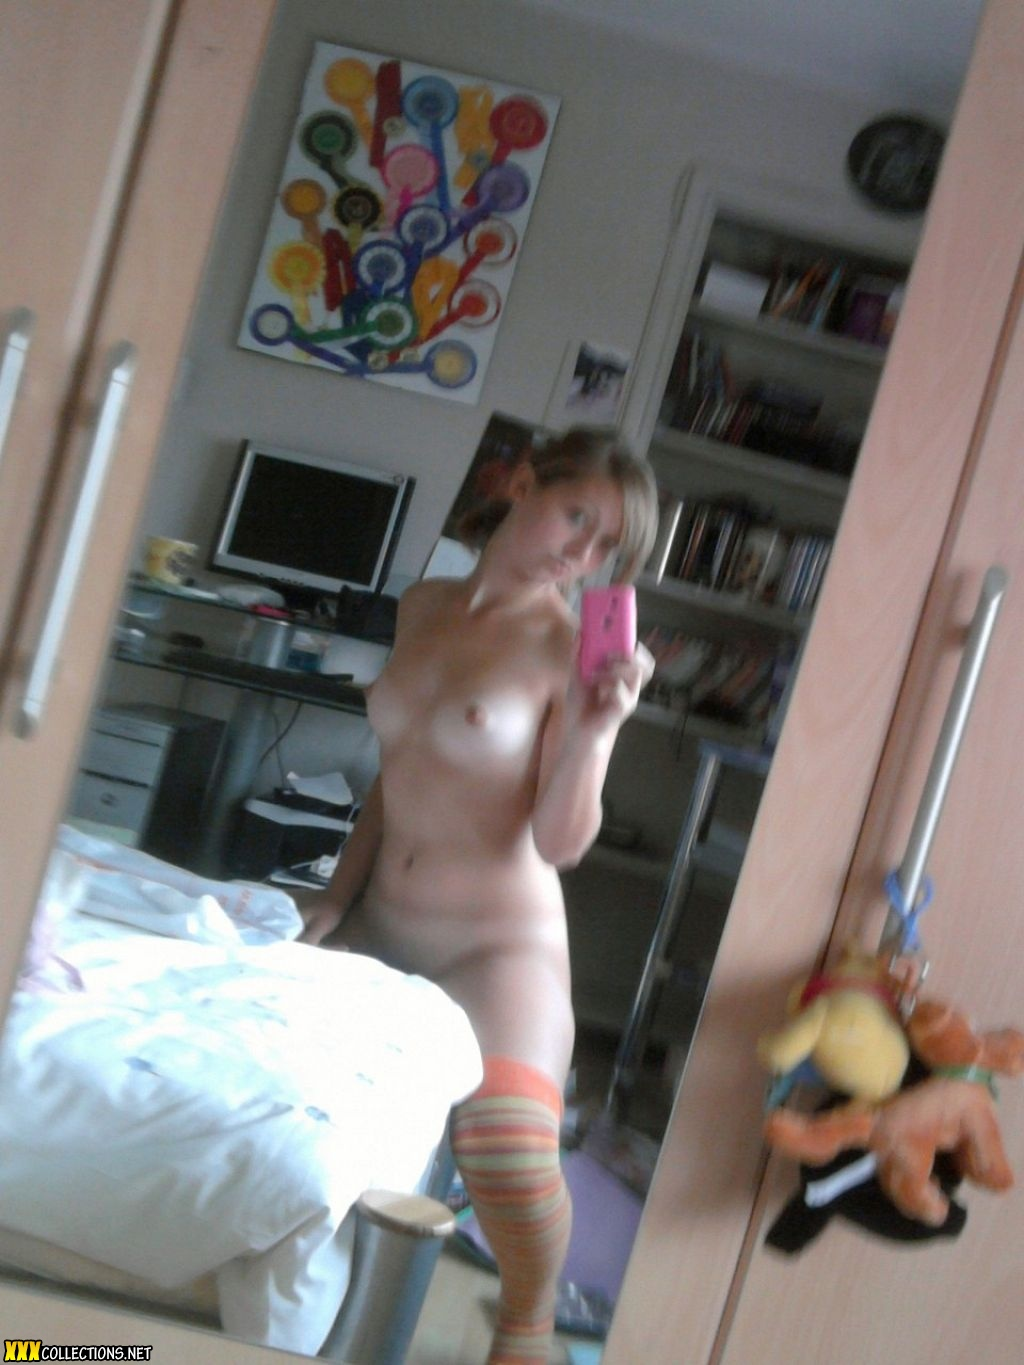 pictures Amateur cell nude phone